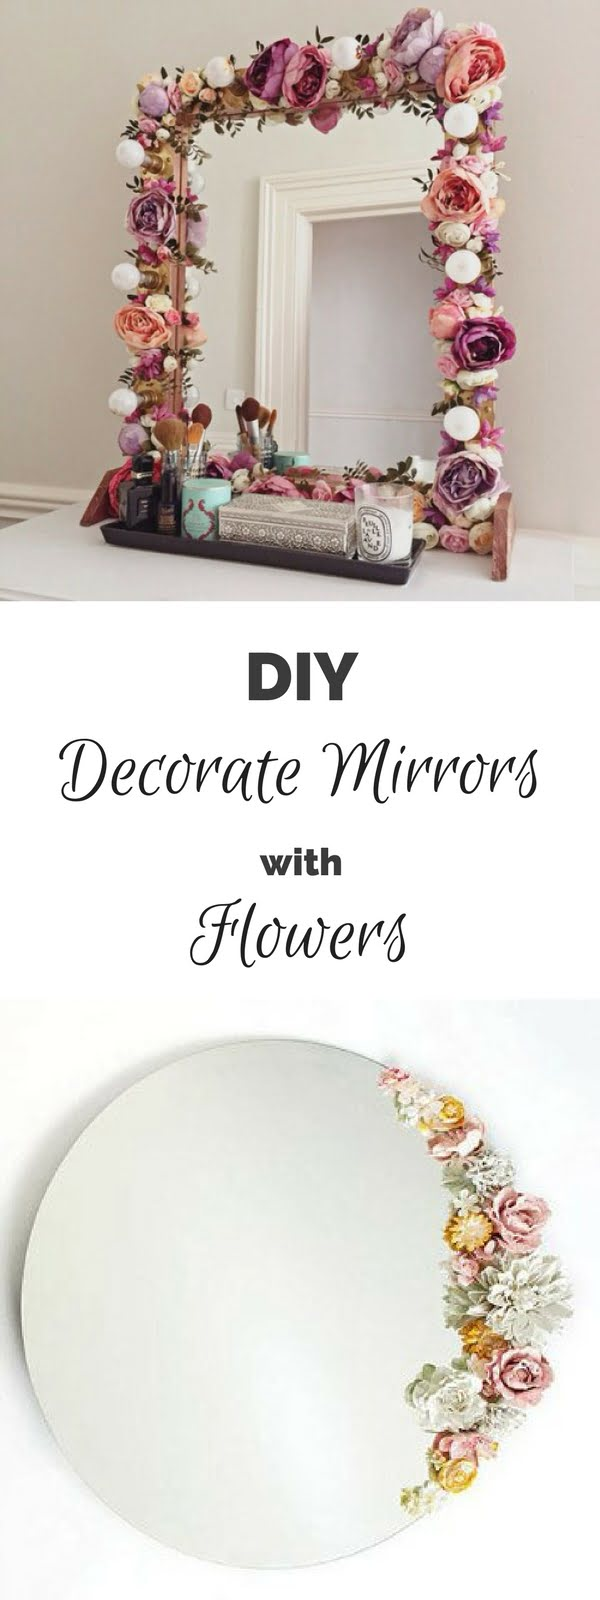 50 Fab DIY Mirror Frames You Can Easily Make Yourself - Check out how to make a DIY flower decorated mirror